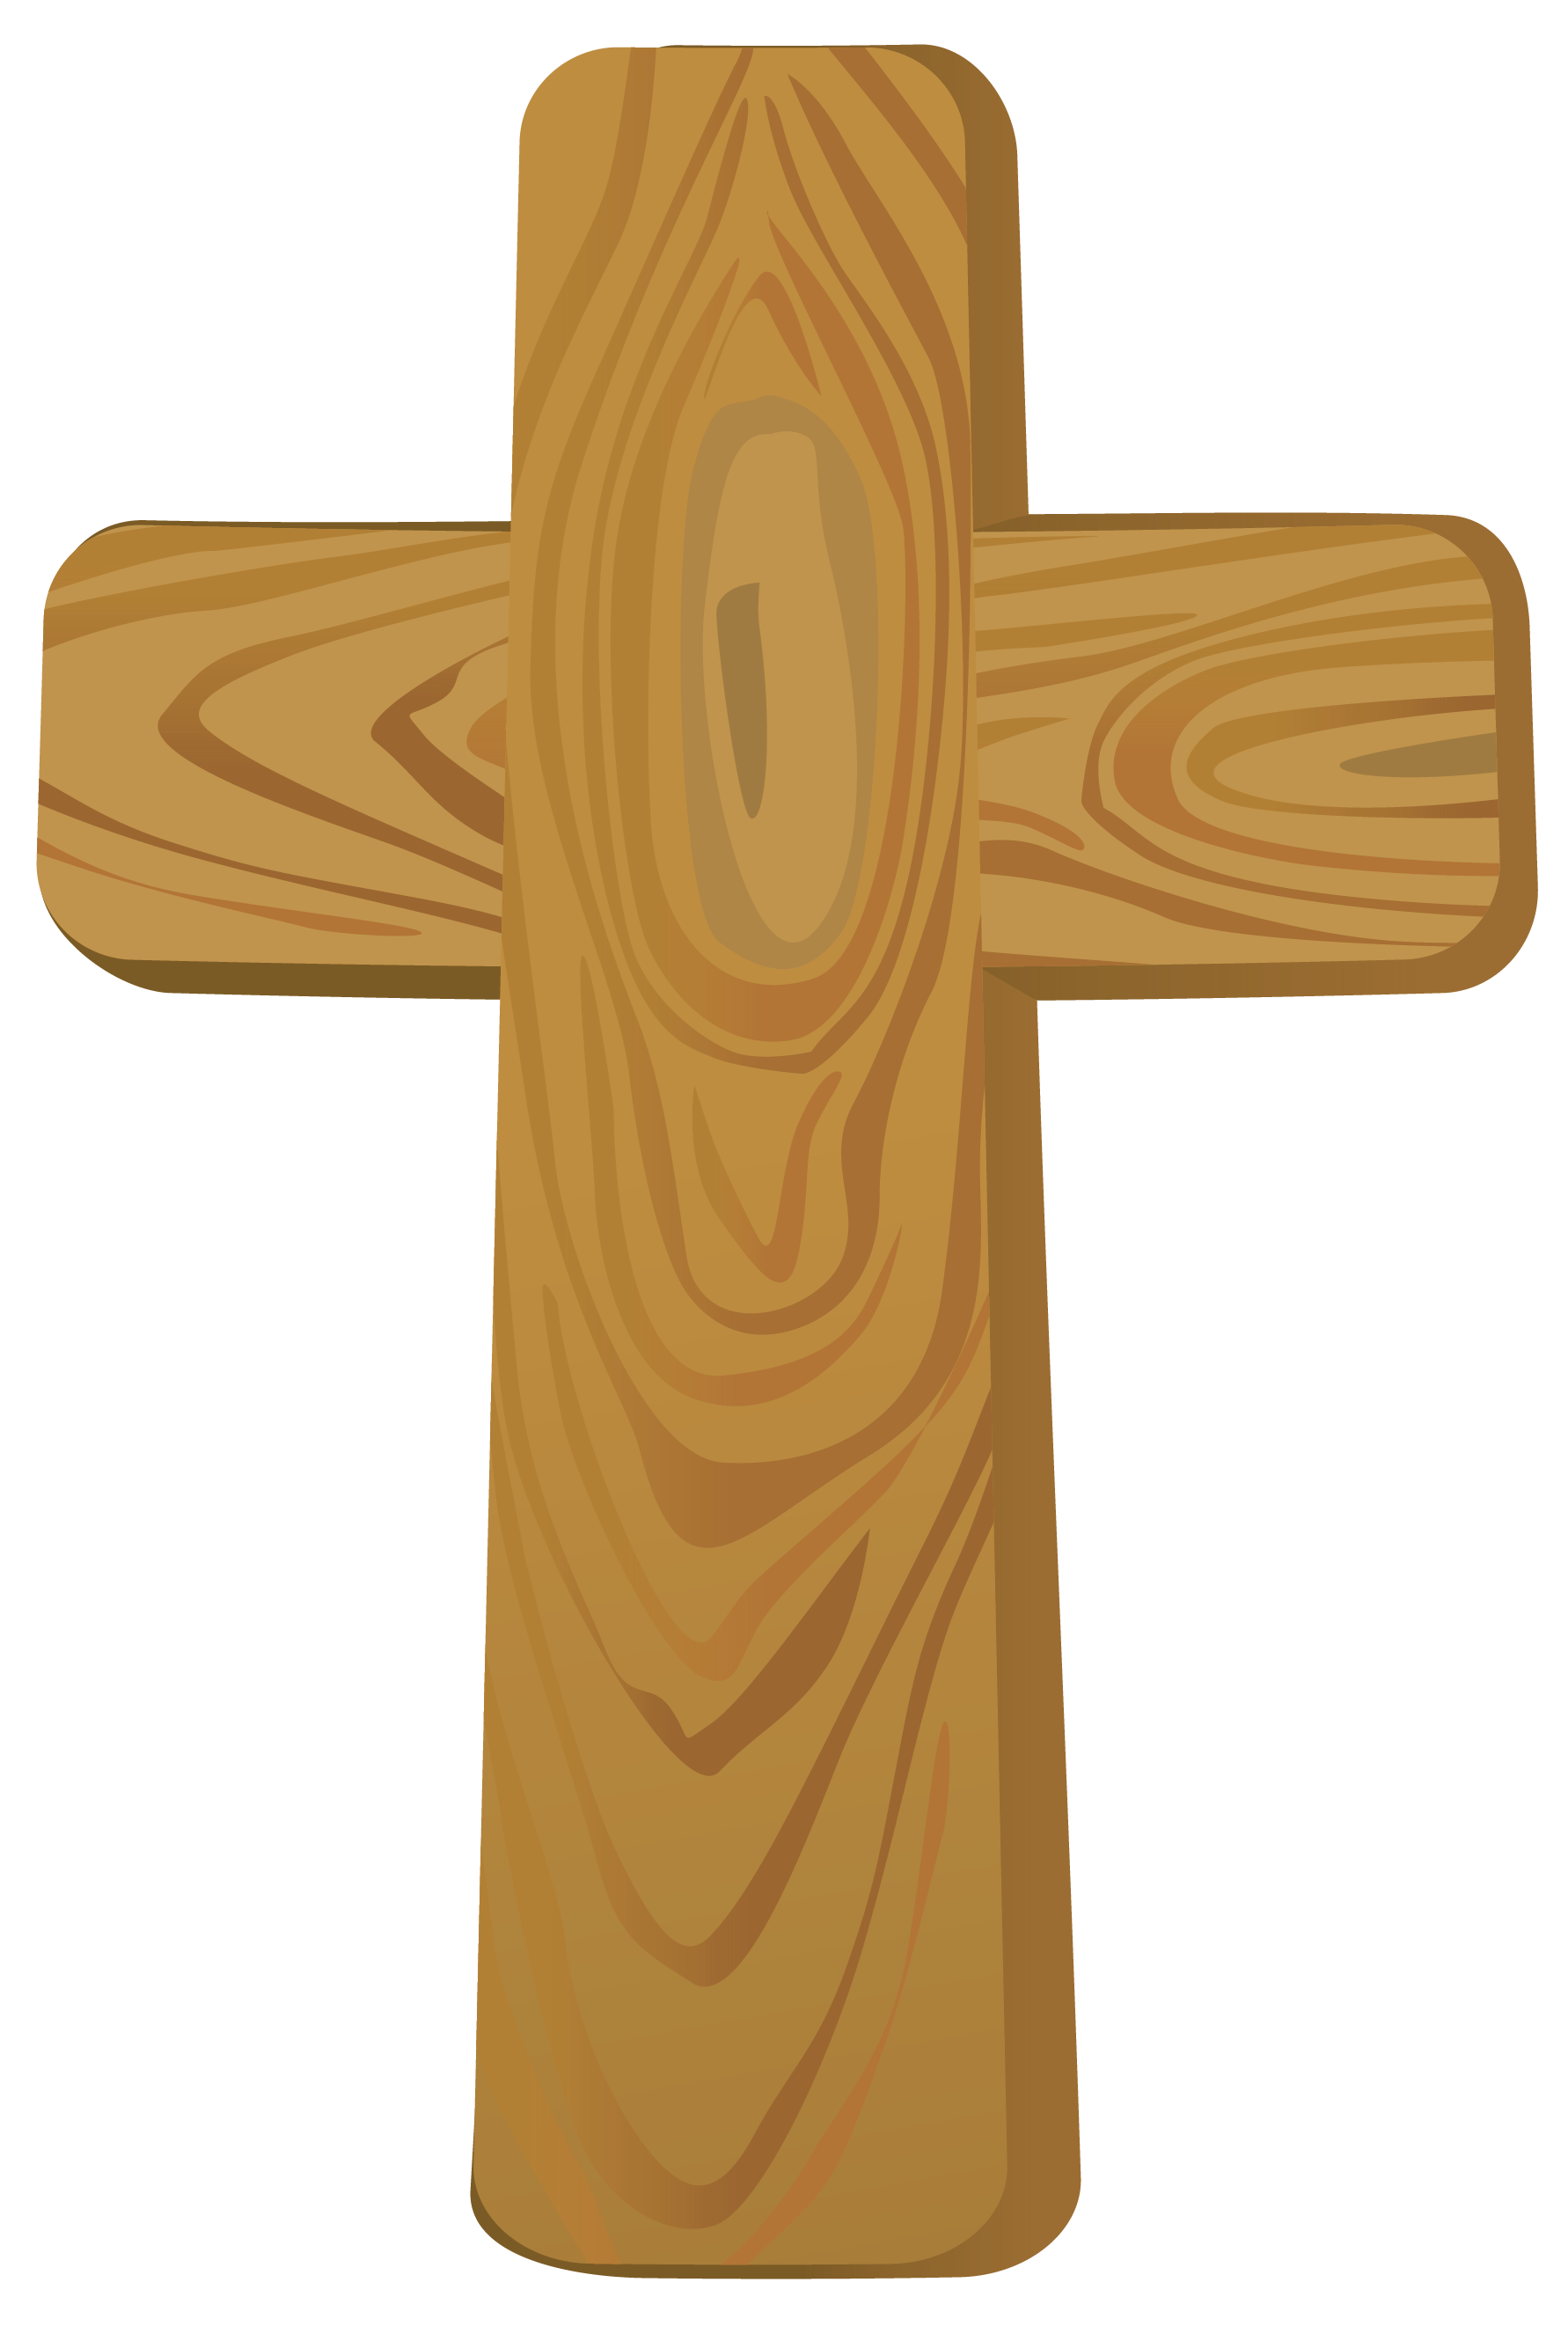 Clipart cross free banner freeuse library Wooden Cross PNG Clipart Picture banner freeuse library